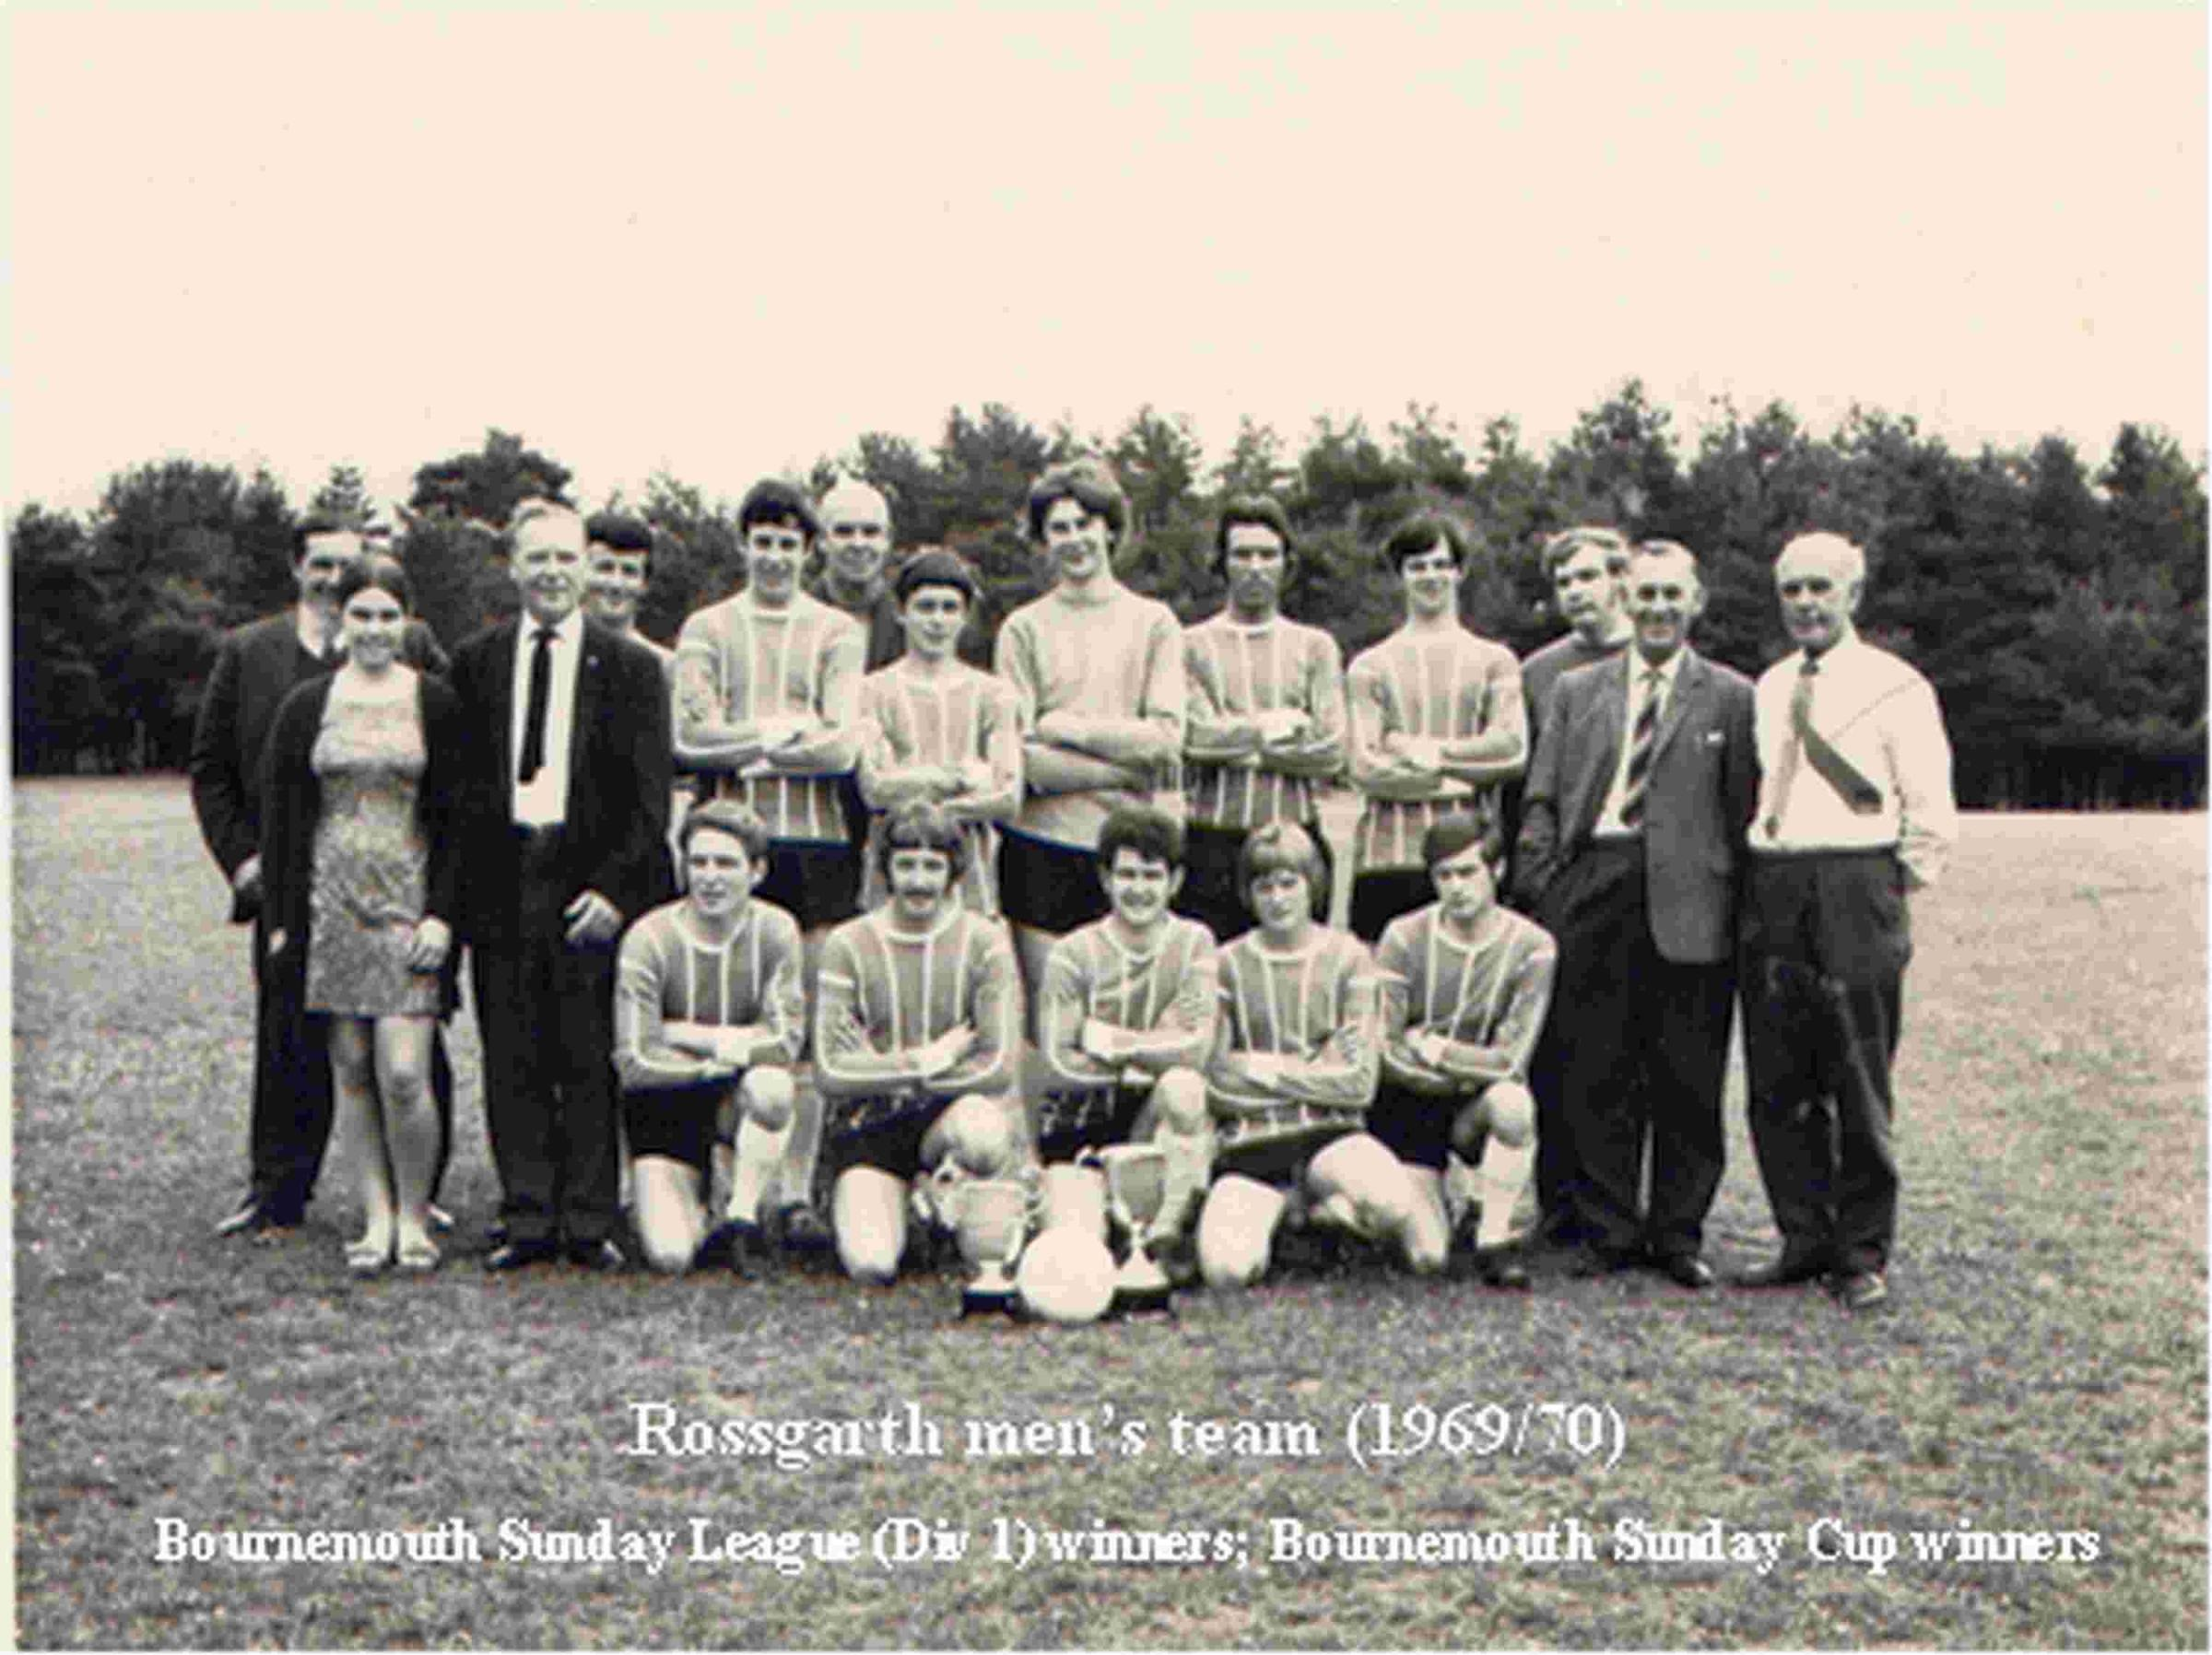 Popular football club marking 50 years